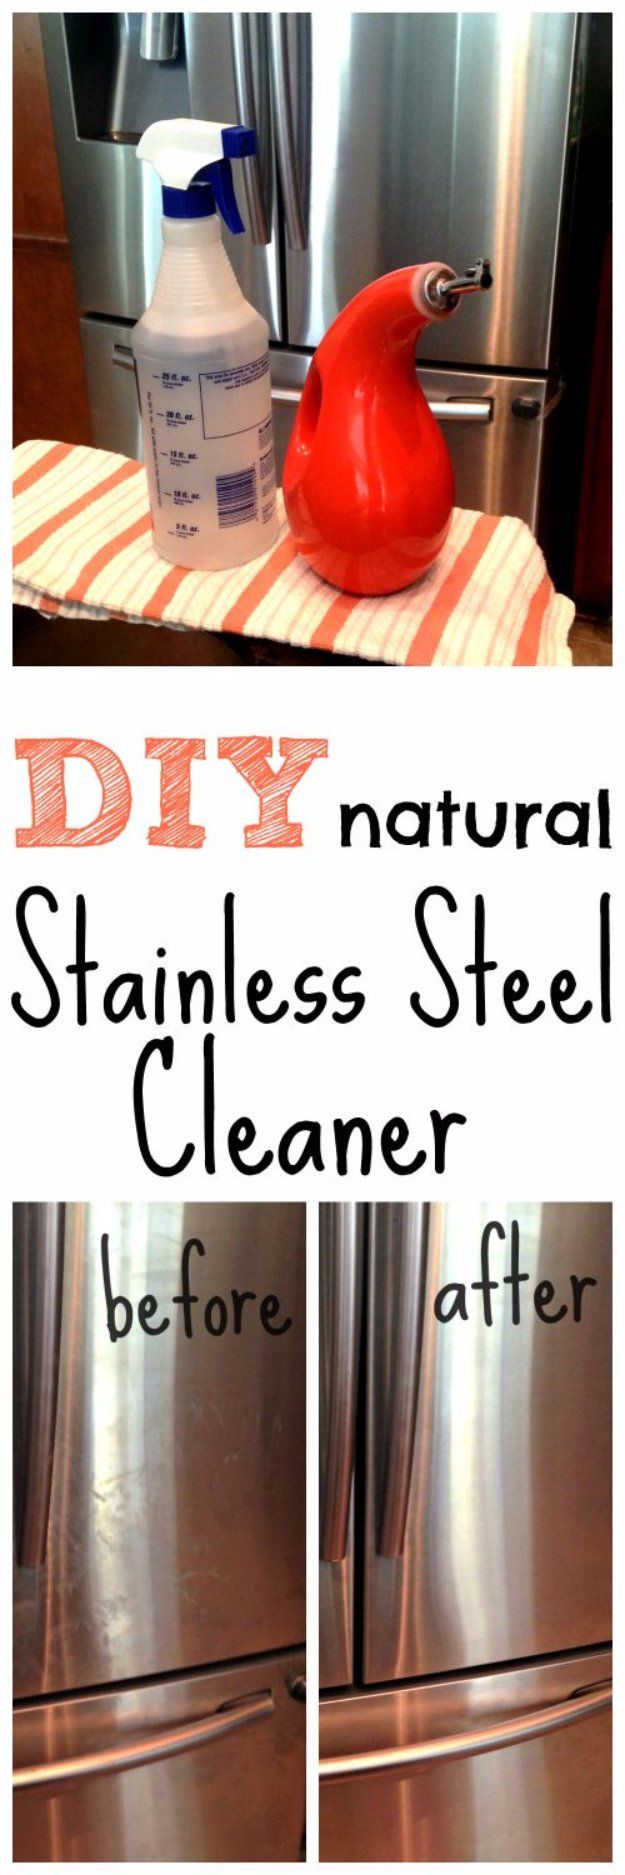 Best Natural Homemade DIY Cleaners and Recipes - DIY Natural Stainless Steel Cleaner Recipe  - All Purposed Home Care and Cleaning with Vinegar, Essential Oils and Other Natural Ingredients For Cleaning Bathroom, Kitchen, Floors, Laundry, Furniture and More http://diyjoy.com/best-homemade-cleaners-recipes